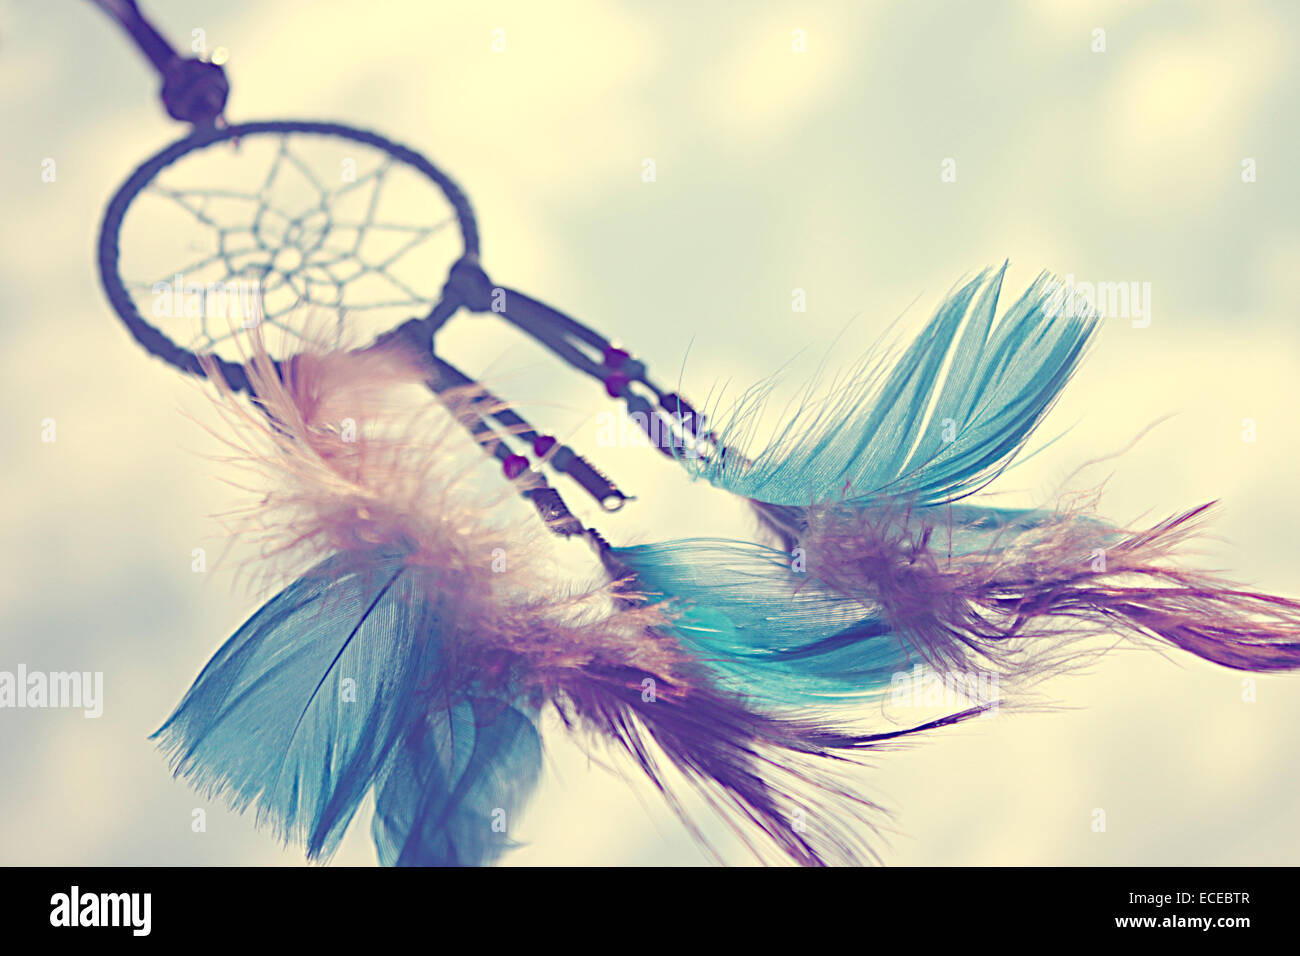 Close-up shot of dreamcatcher with colored feathers - Stock Image